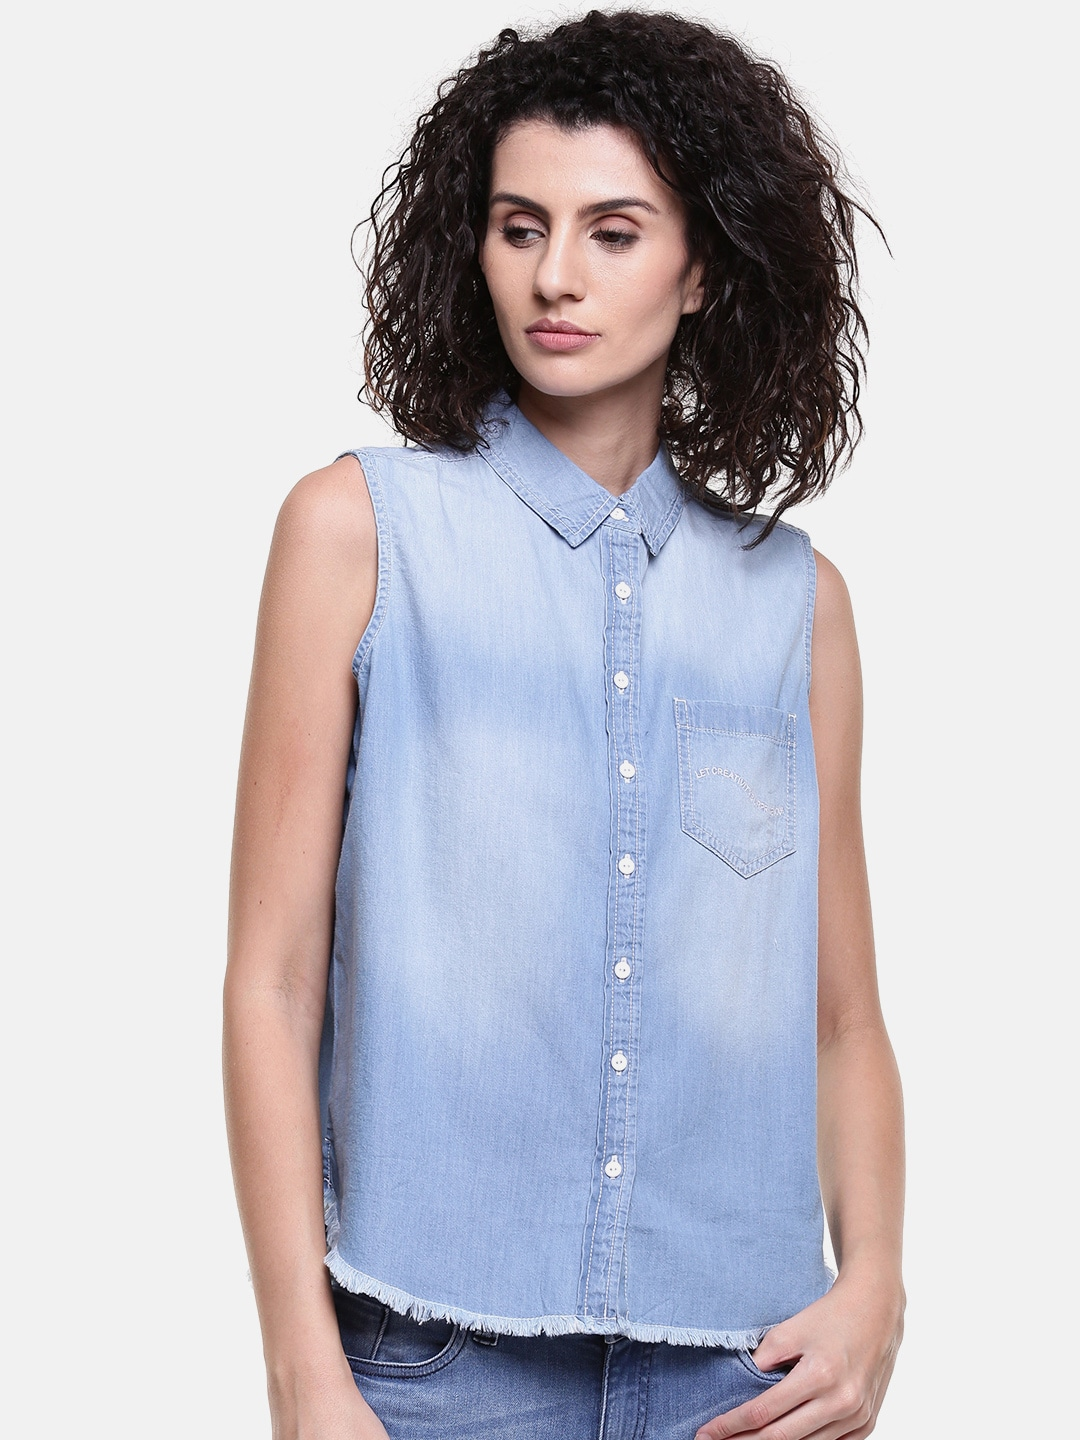 e0409e9016b Lee - Exclusive Lee Online Store in India at Myntra